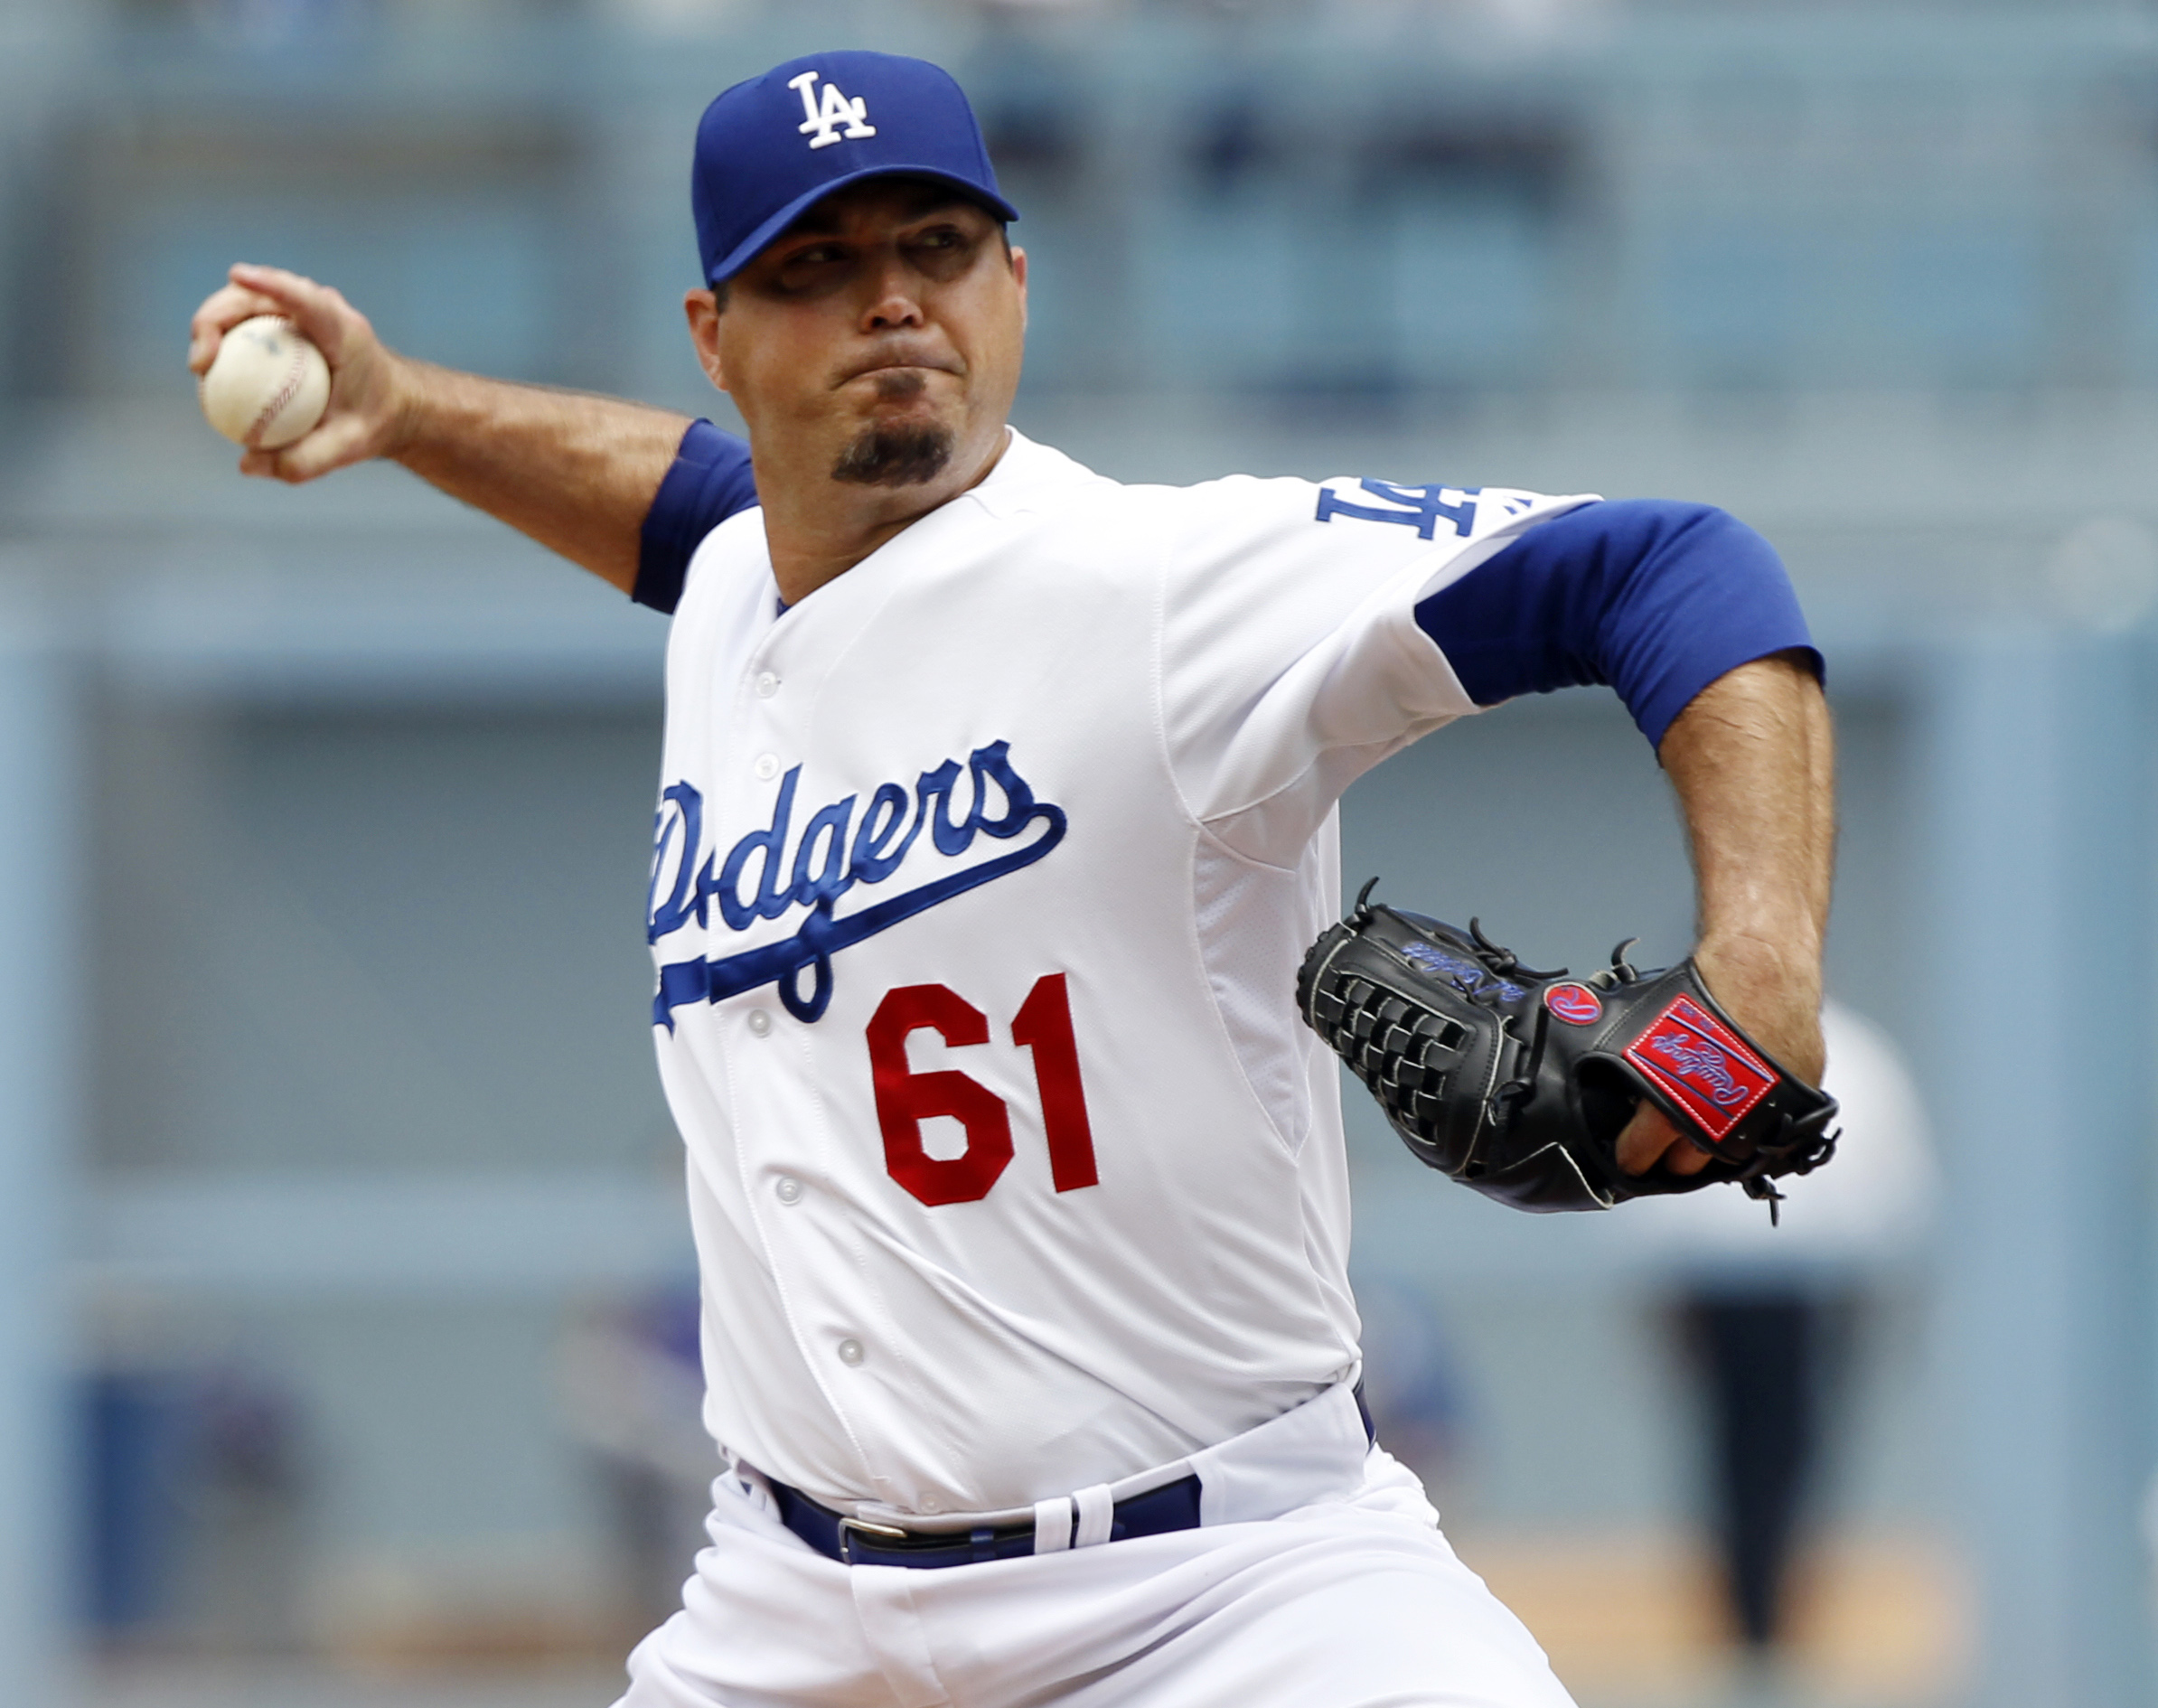 Former MLB pitcher Josh Beckett was arrested early Saturday after tackling a country music singer at an open mic night in Texas. (AP)